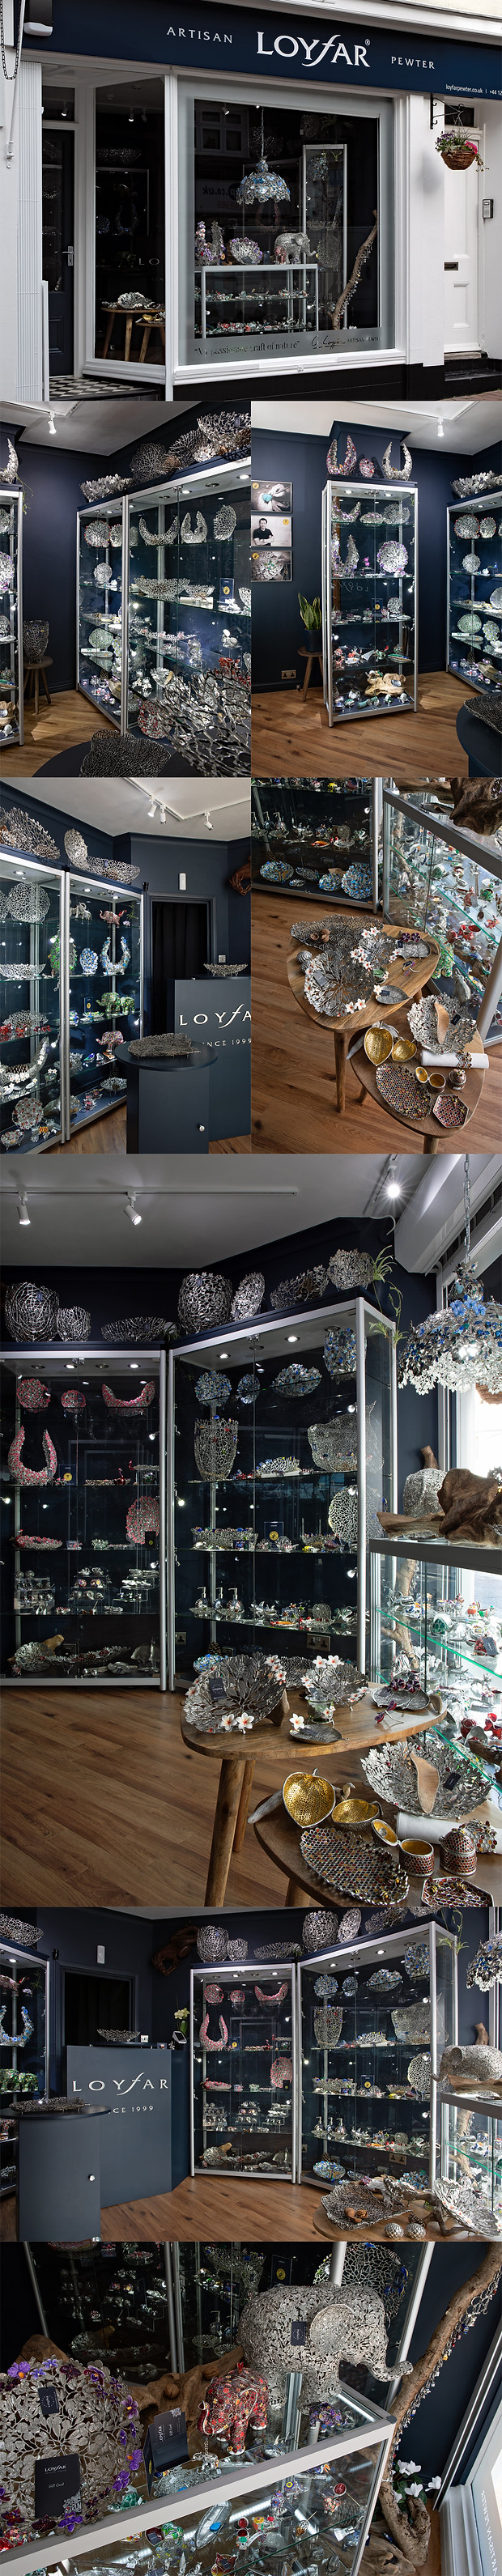 Loyfar Pewter UK. We are proud to announce that on 29 October 2020 Loyfar (UK) openedits first boutique in the unique and vibrant North Laine district of Brighton, on the English south coast.